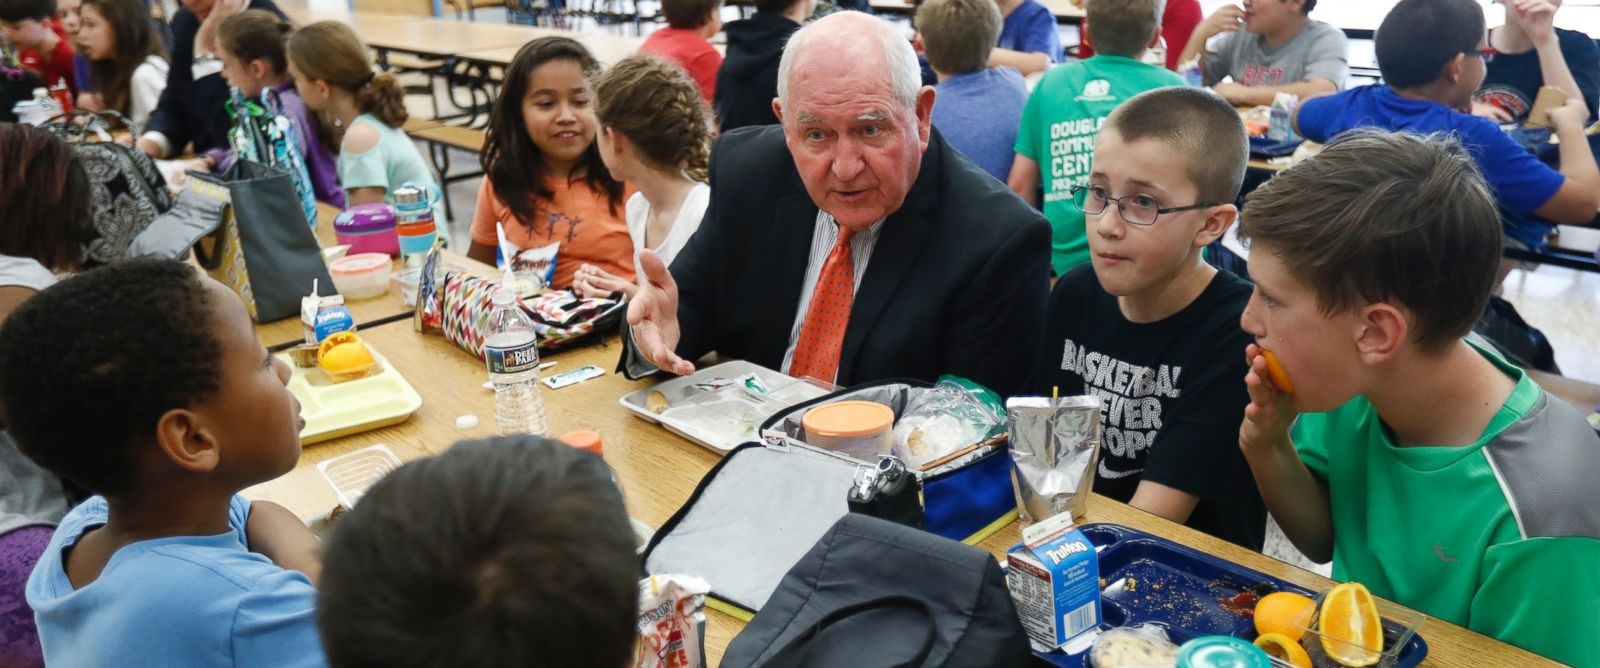 PHOTO: Agriculture Secretary Sonny Perdue has lunch with students in the cafeteria at Catoctin Elementary School in Leesburg, Va., May 1, 2017.